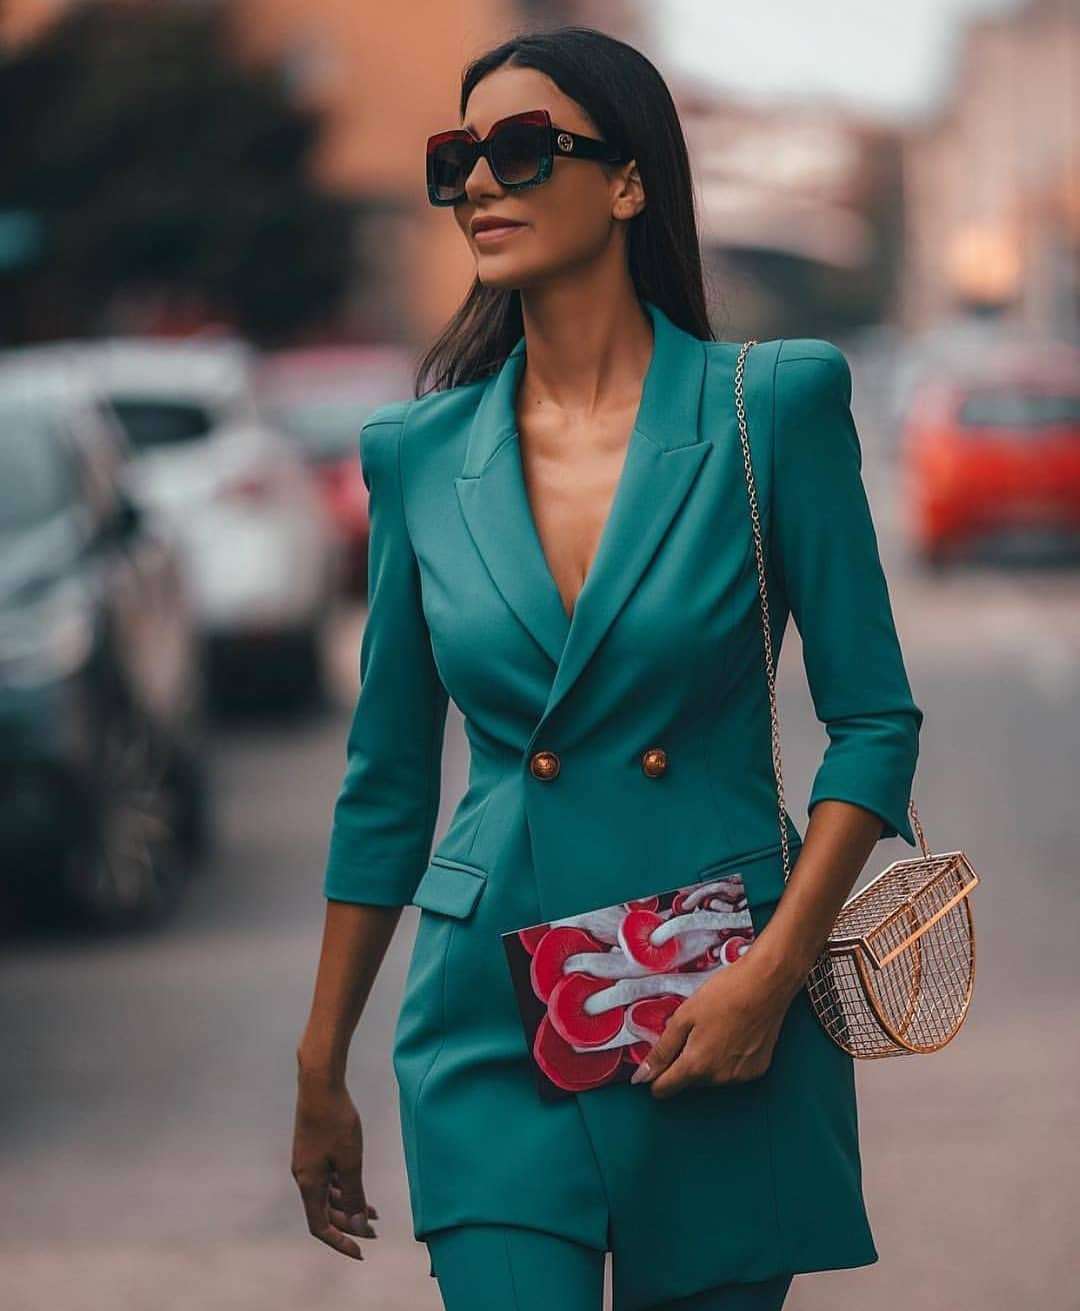 Turquoise Double-Breasted Pantsuit For Spring 2021